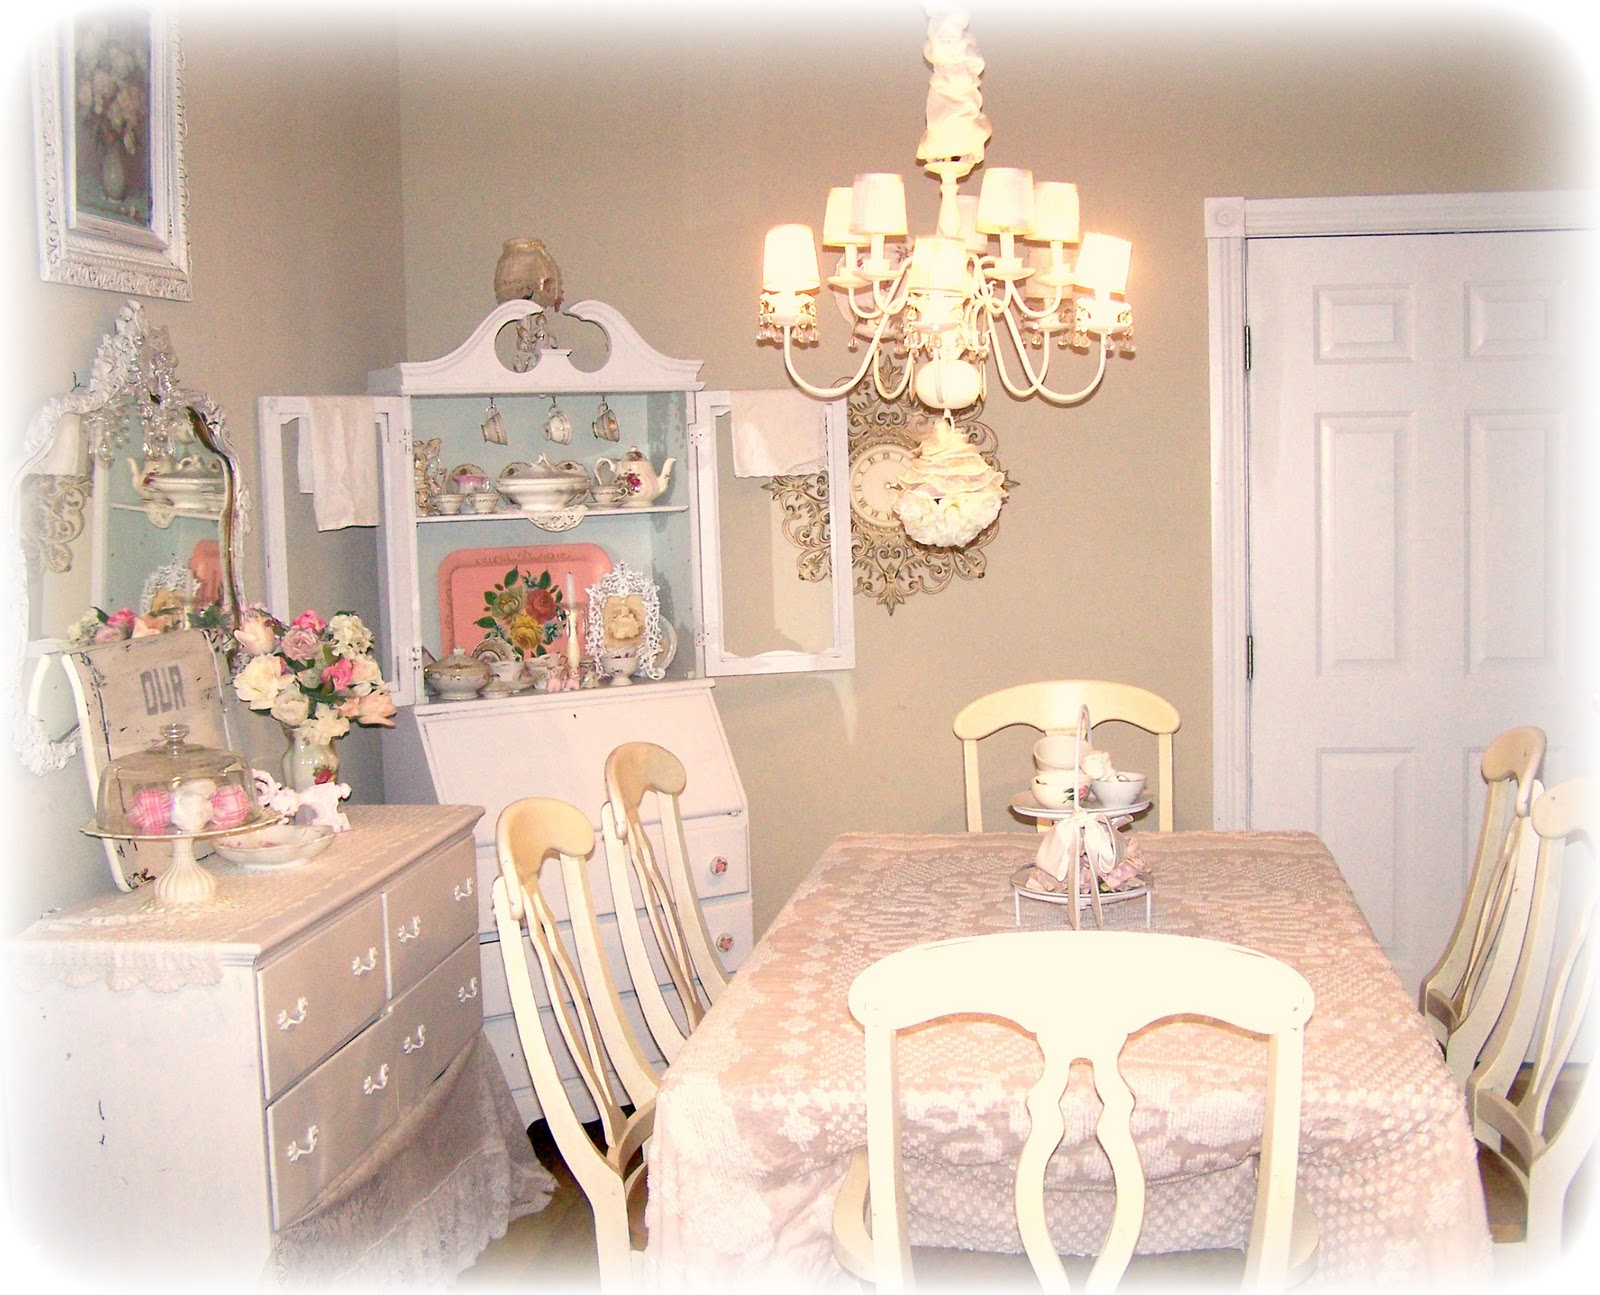 olivia 39 s romantic home shabby chic cottage dining room. Black Bedroom Furniture Sets. Home Design Ideas